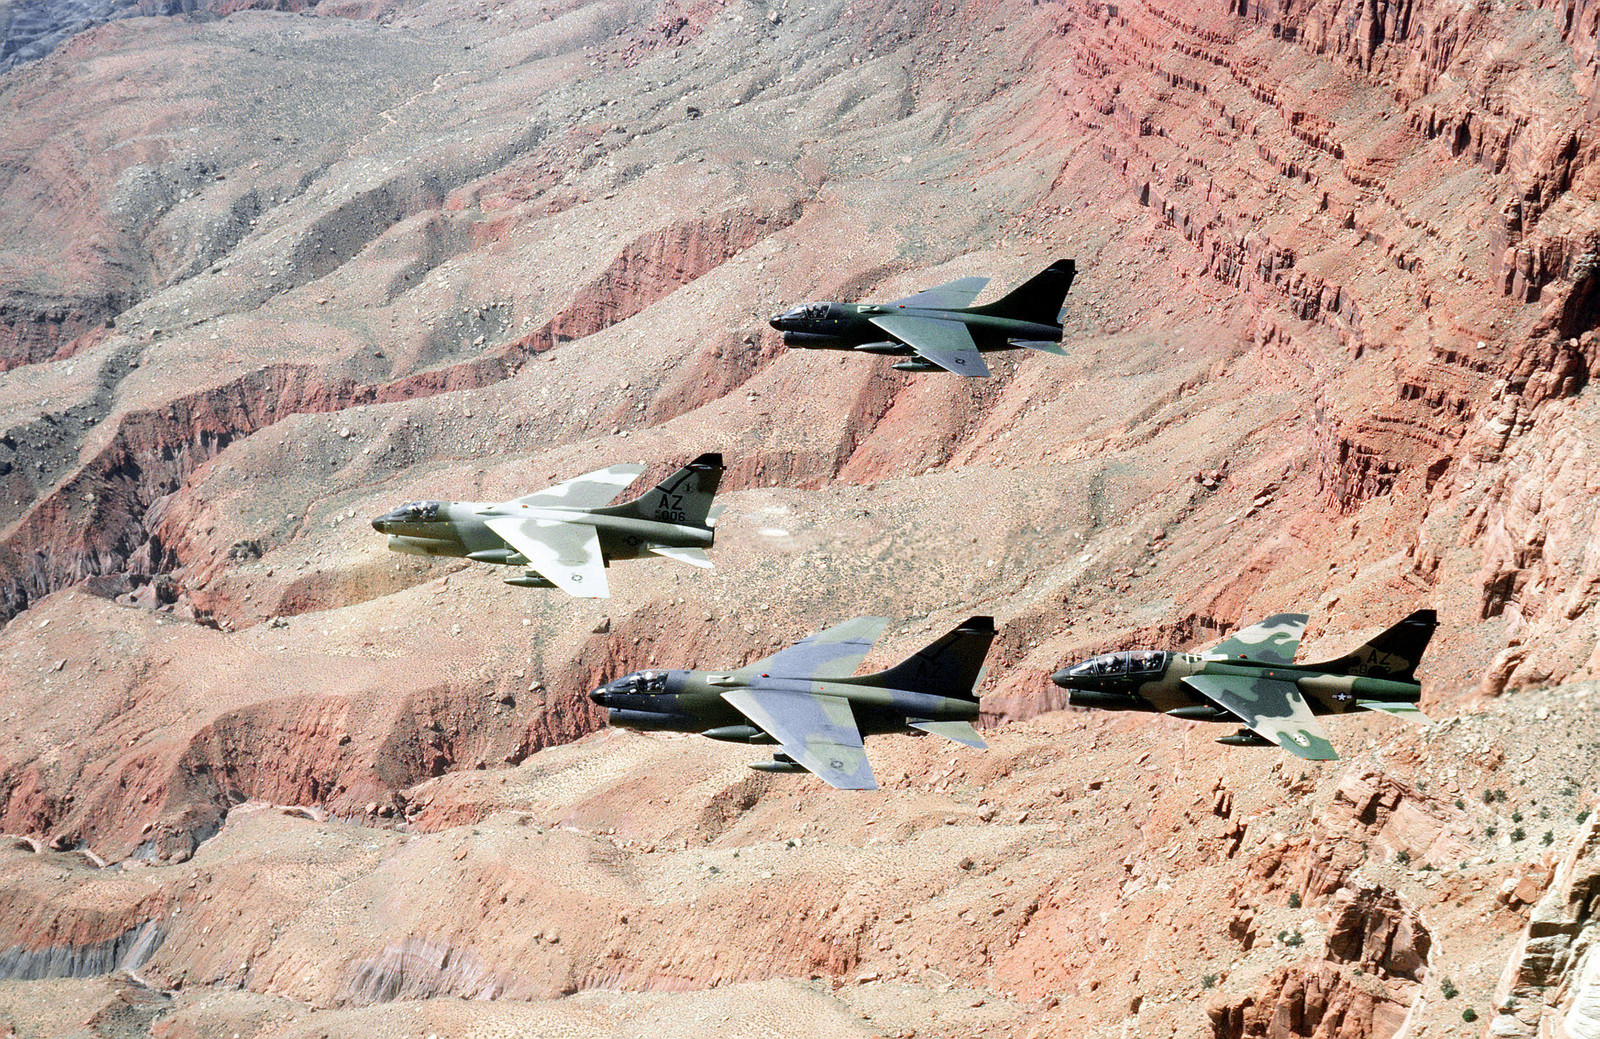 Three A-7D Corsair II aircraft and one A7K Corsair II aircraft, at the far right, fly in formation over the desert. The aircraft, each in a different paint scheme, are being tested against desert and forest background for visibility